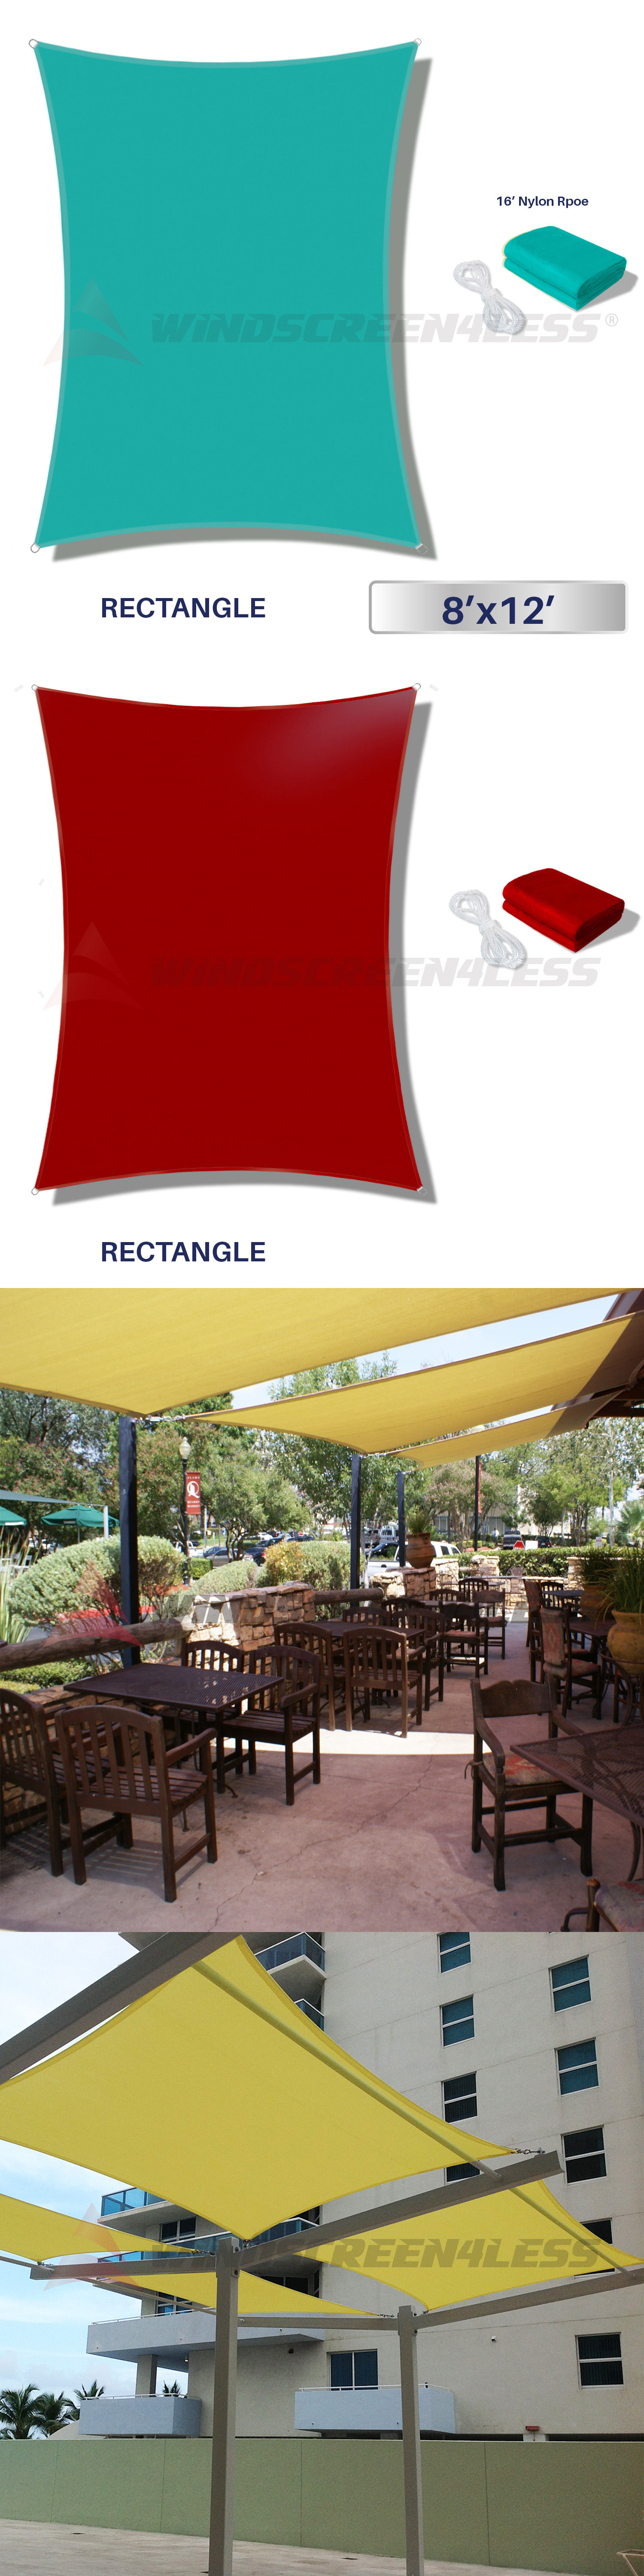 Other Structures and Shade 177026 8 X 12 Waterproof Sun Shade Sail Fabric Outdoor Canopy & Other Structures and Shade 177026: 8 X 12 Waterproof Sun Shade ...